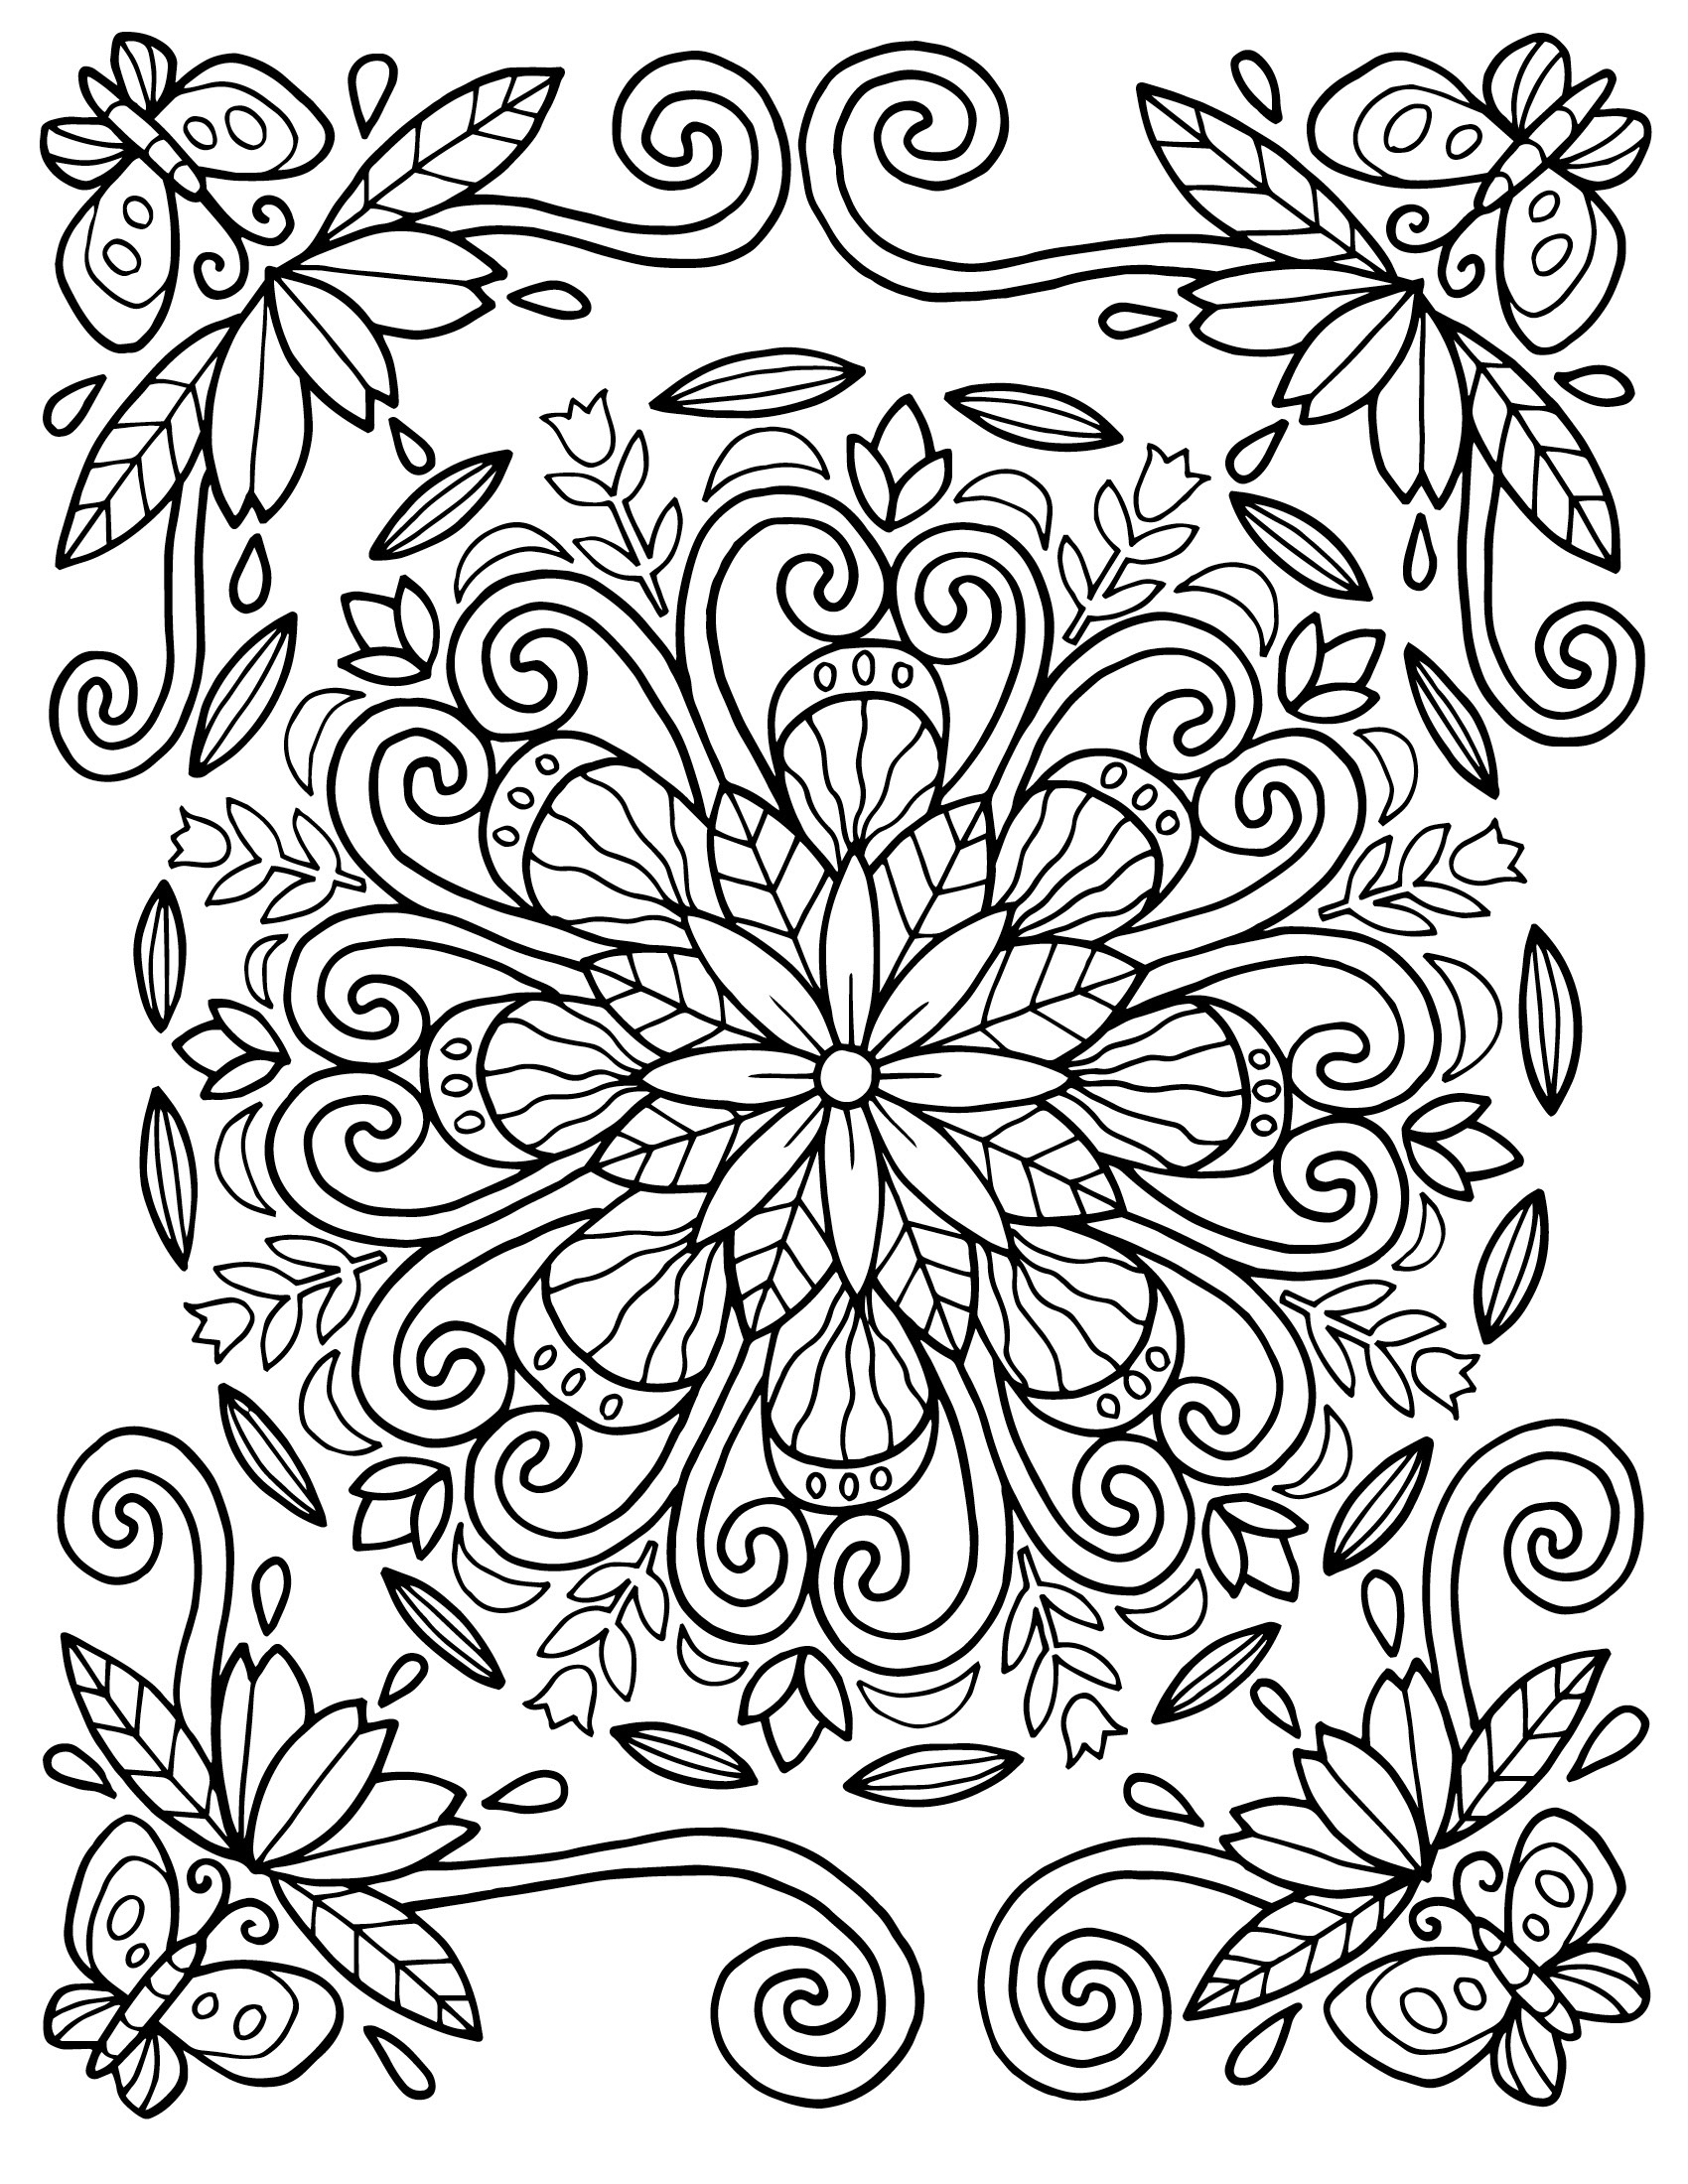 Floral Coloring Pages For Adults Best Coloring Pages For Kids